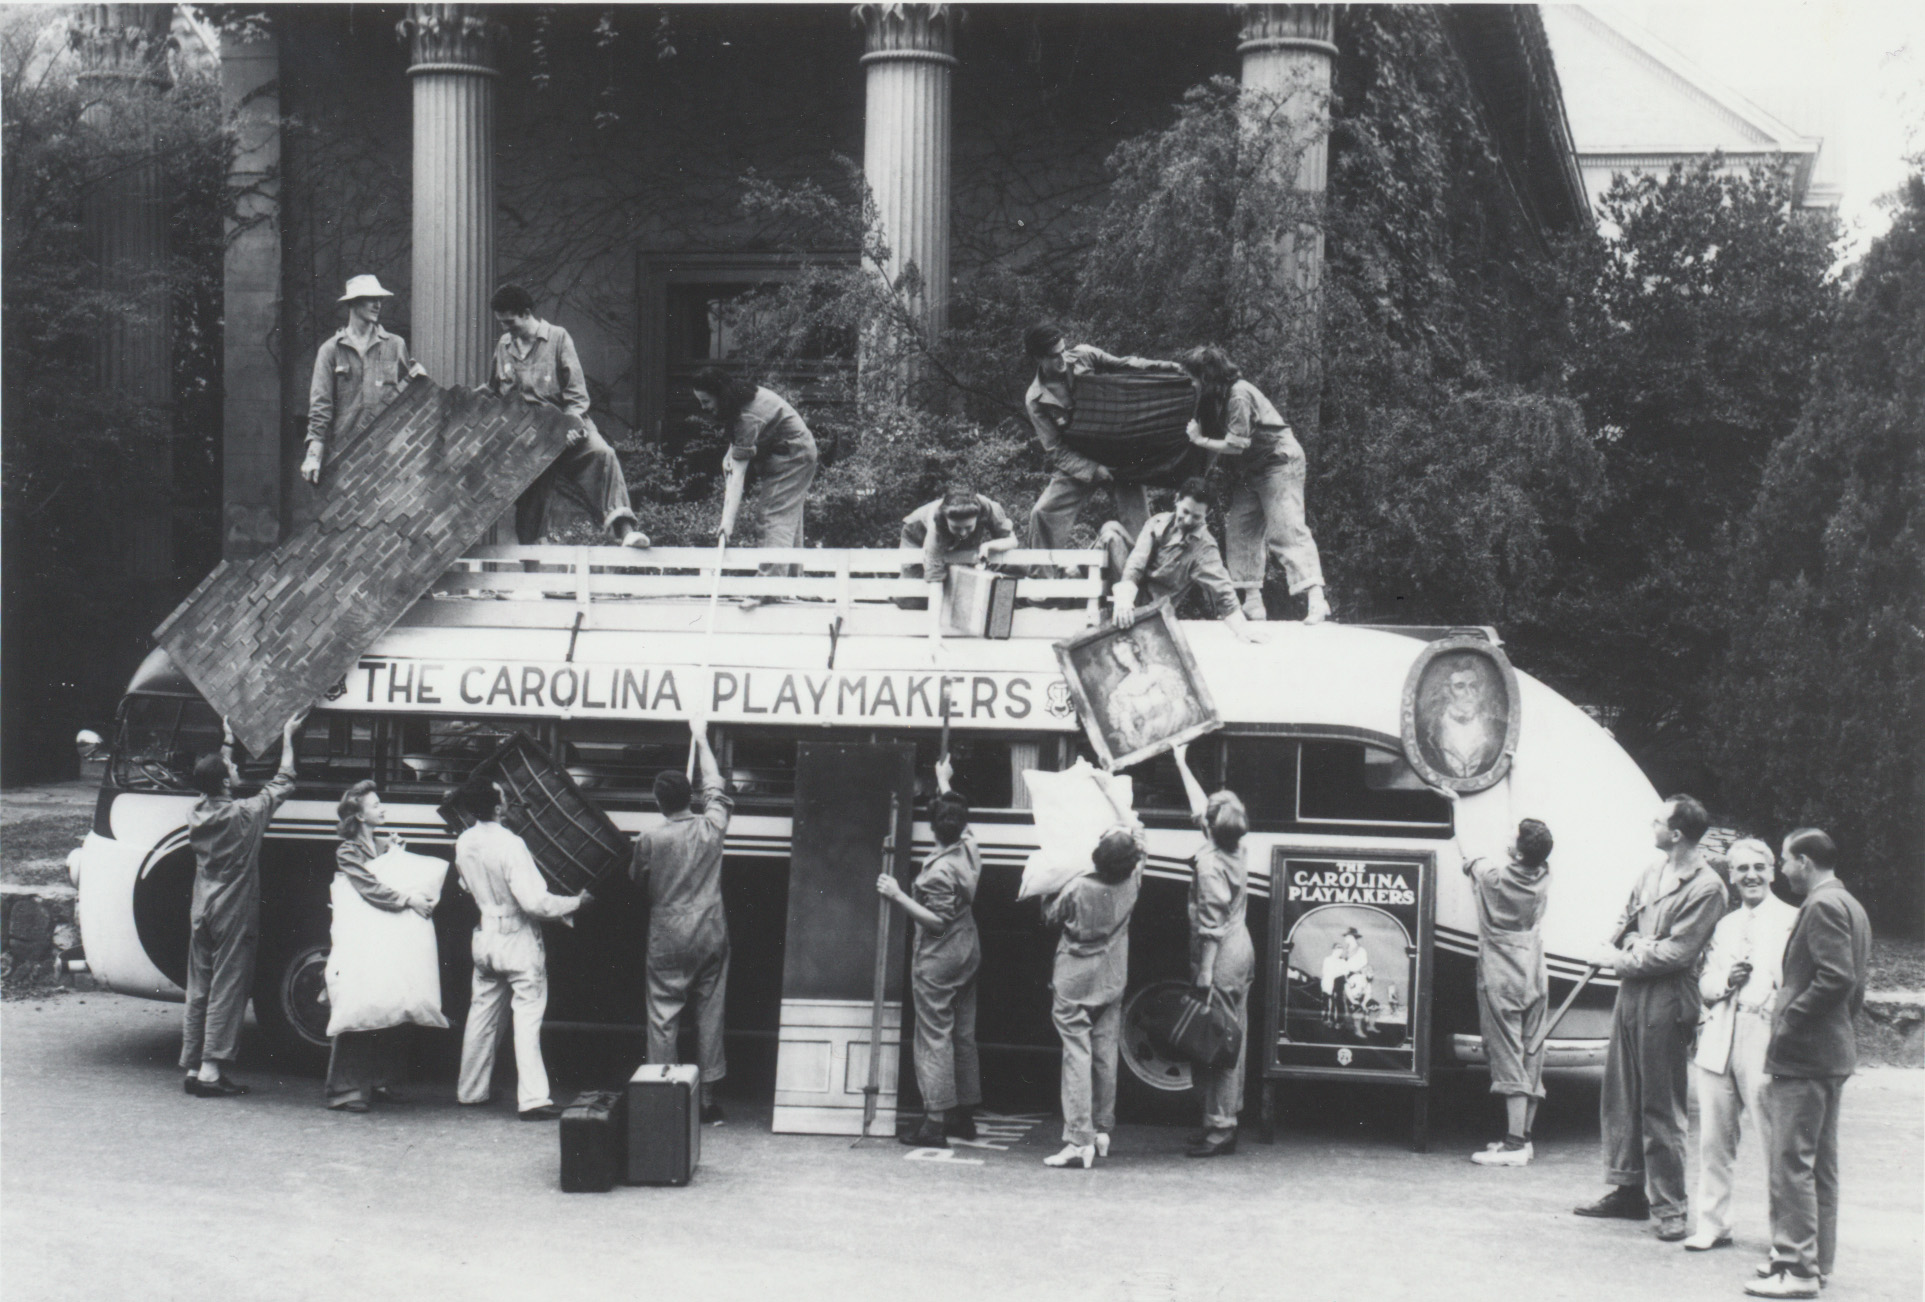 Members of the Carolina Playmakers load a bus with props before leaving on a tour in the fall of 1941. North Carolina Collection, University of North Carolina Library at Chapel Hill